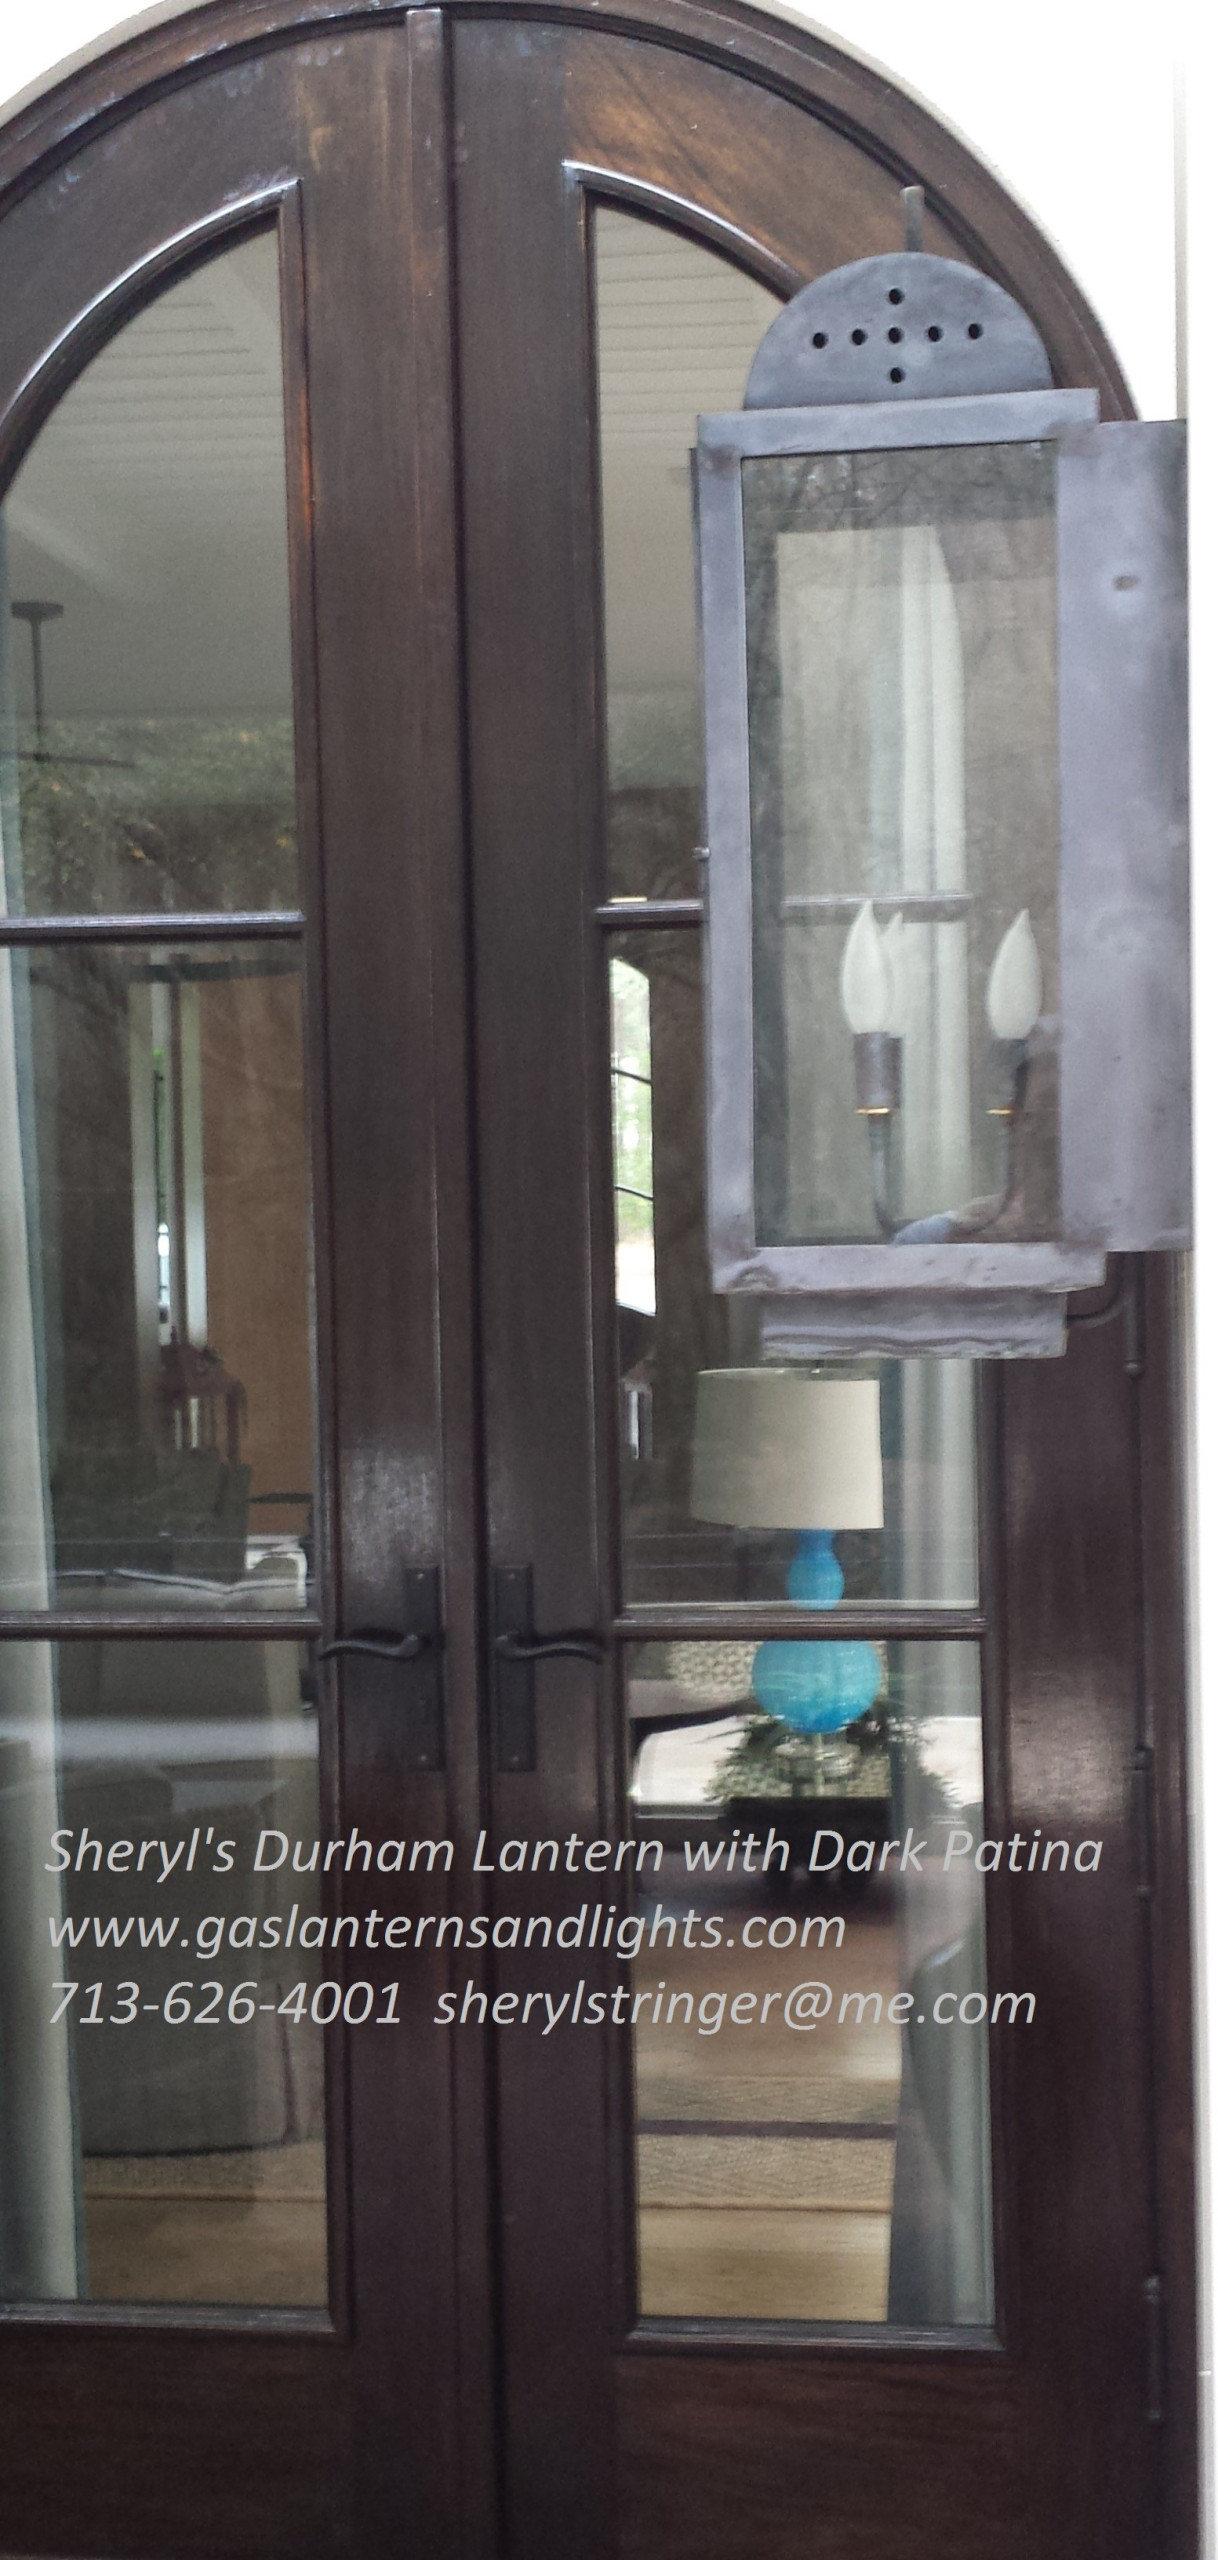 Electric Durham Lantern with Dark Patina Finish  by Sheryl Stringer